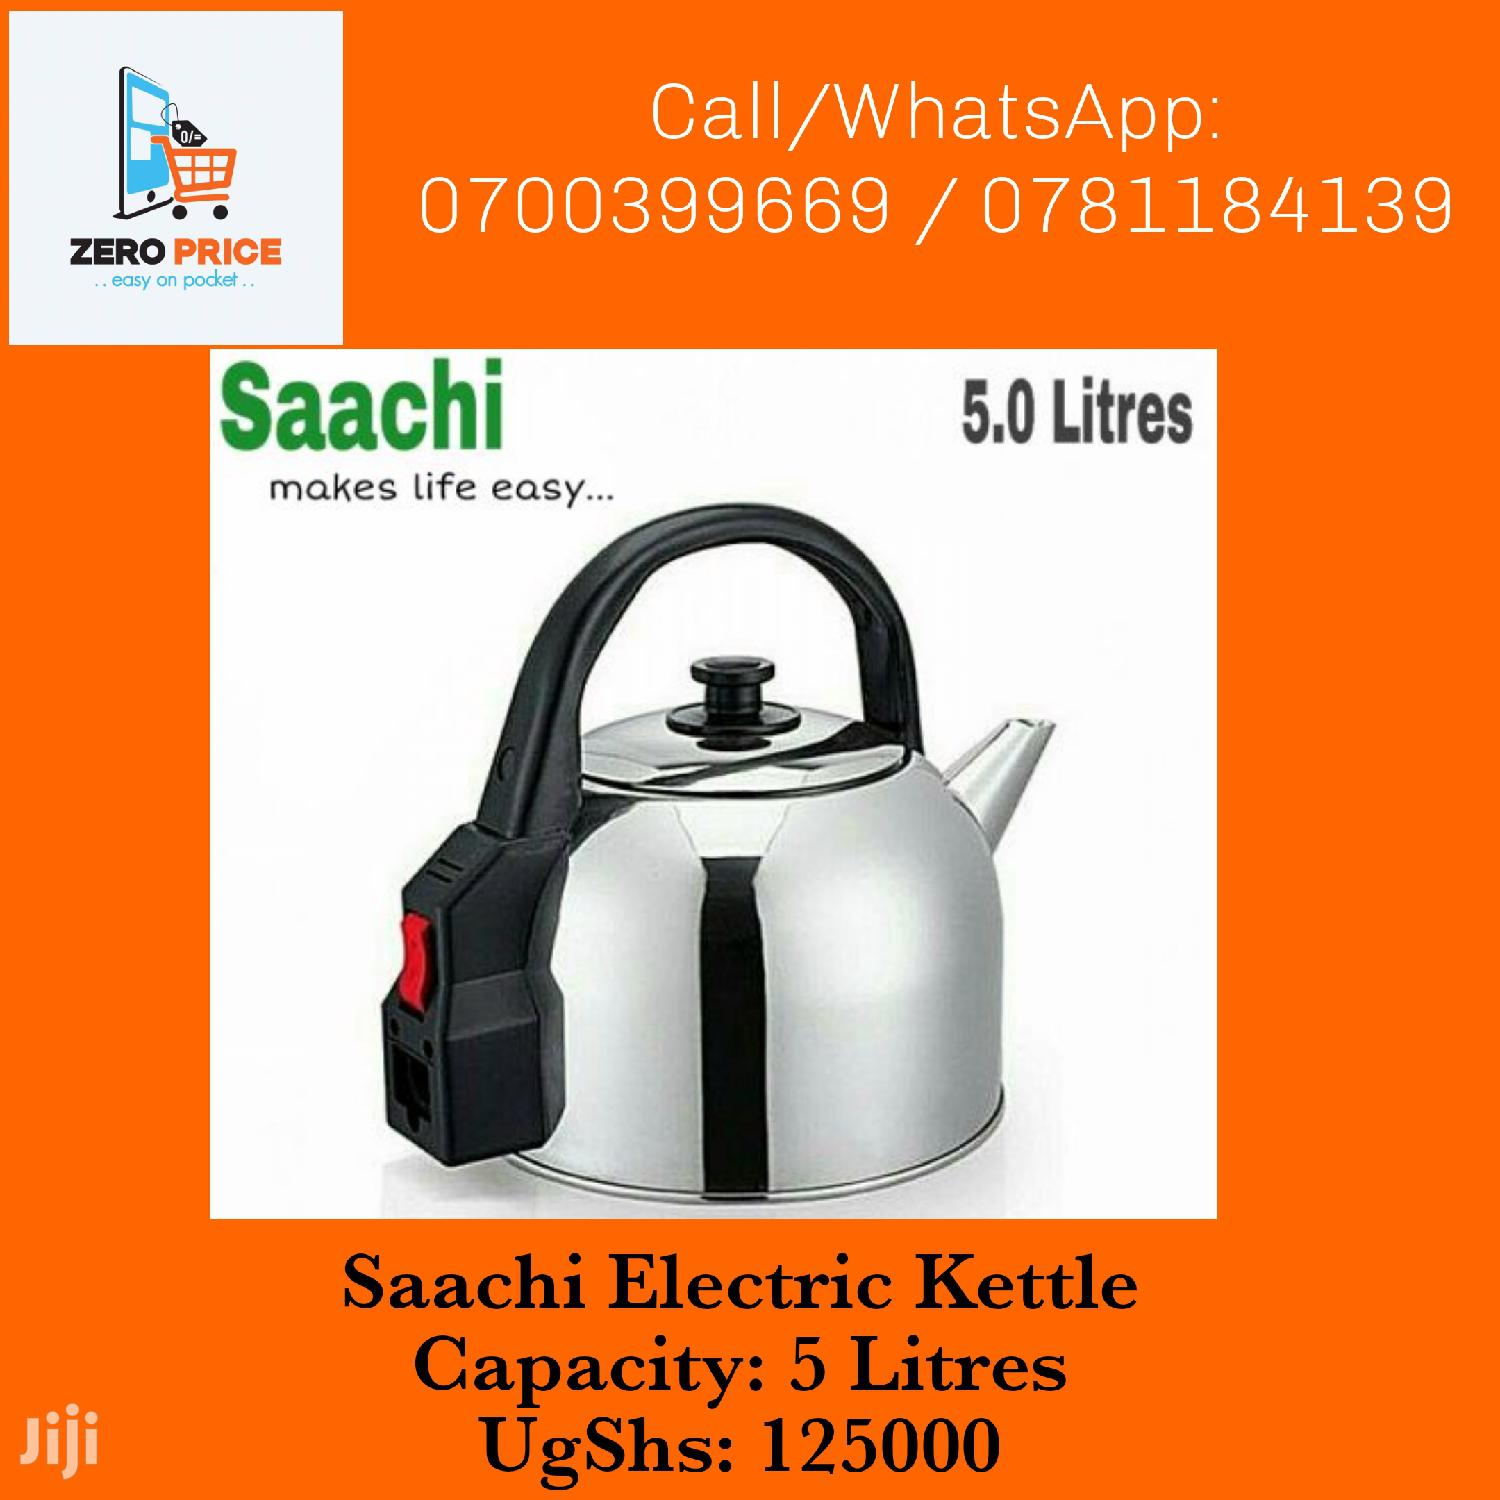 Saachi Stainless Steel Electric Kettle - 5L